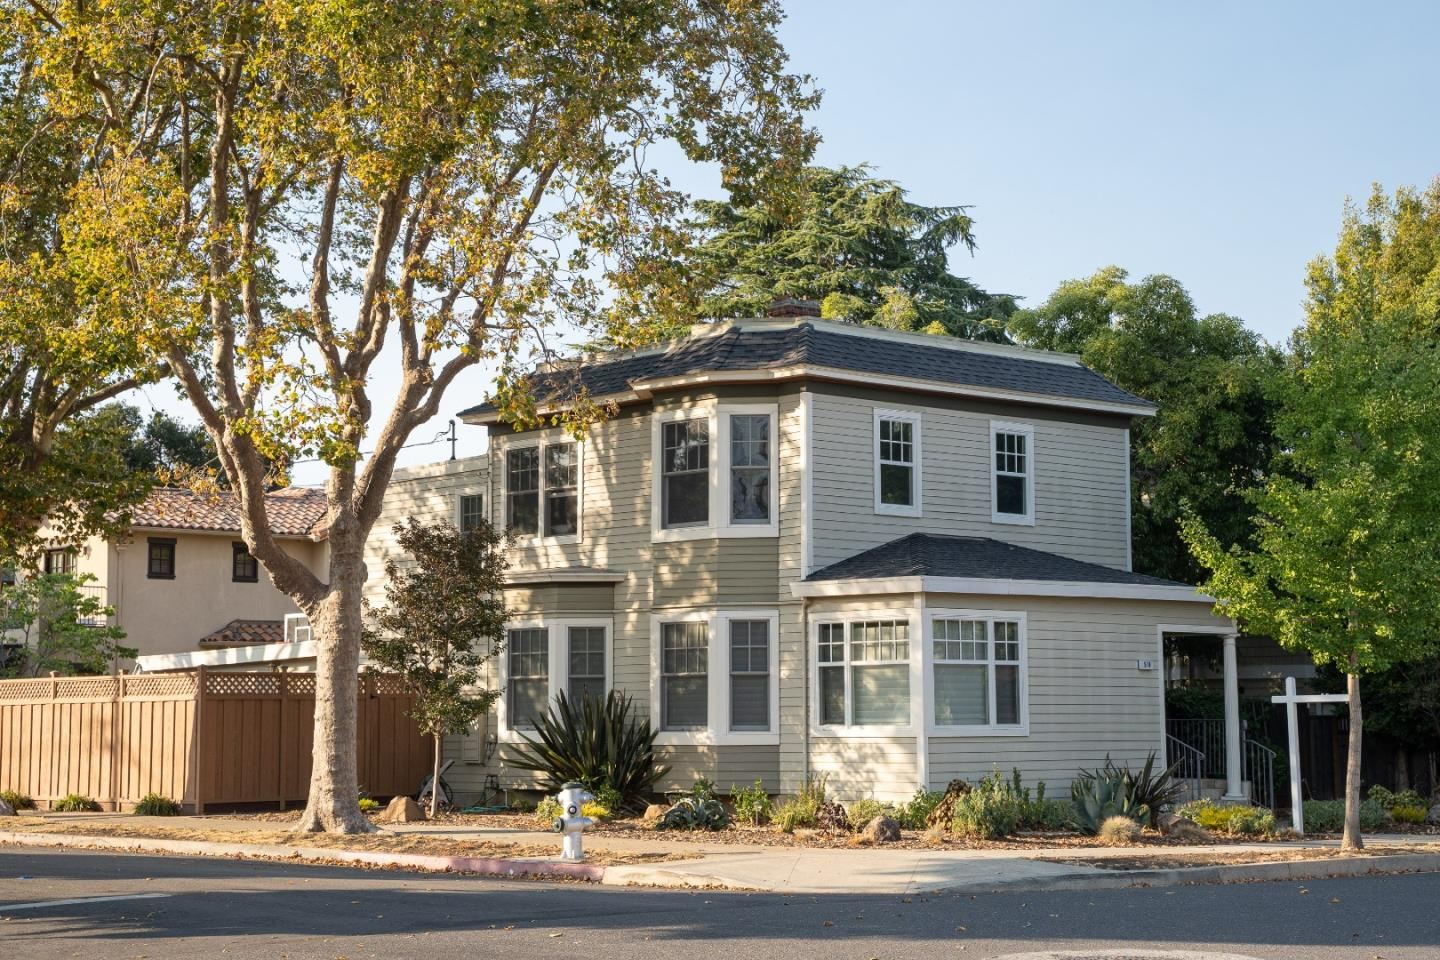 Photo for 518 Bayswater AVE, BURLINGAME, CA 94010 (MLS # ML81806952)